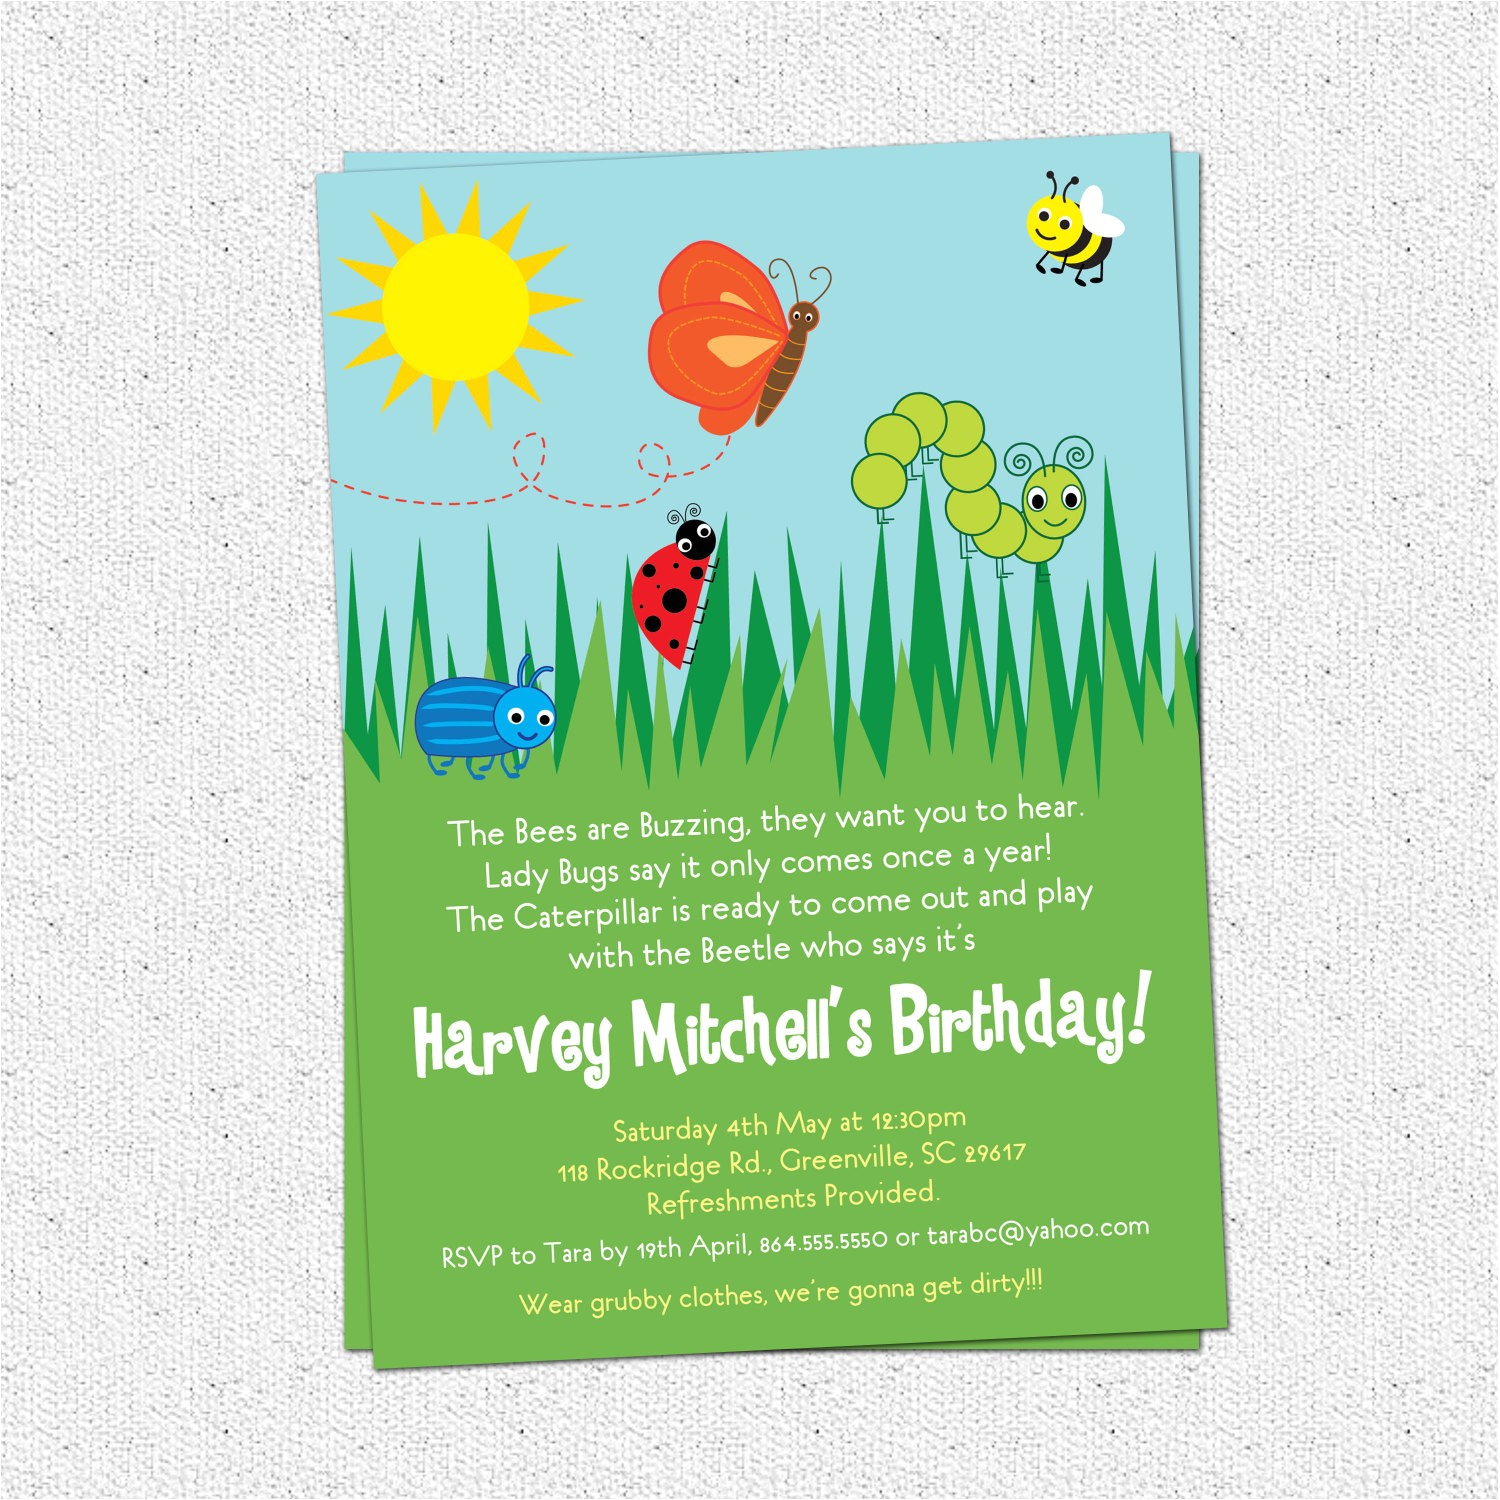 6809971 bug insects birthday party invitations summer butterfly bee beetle cate